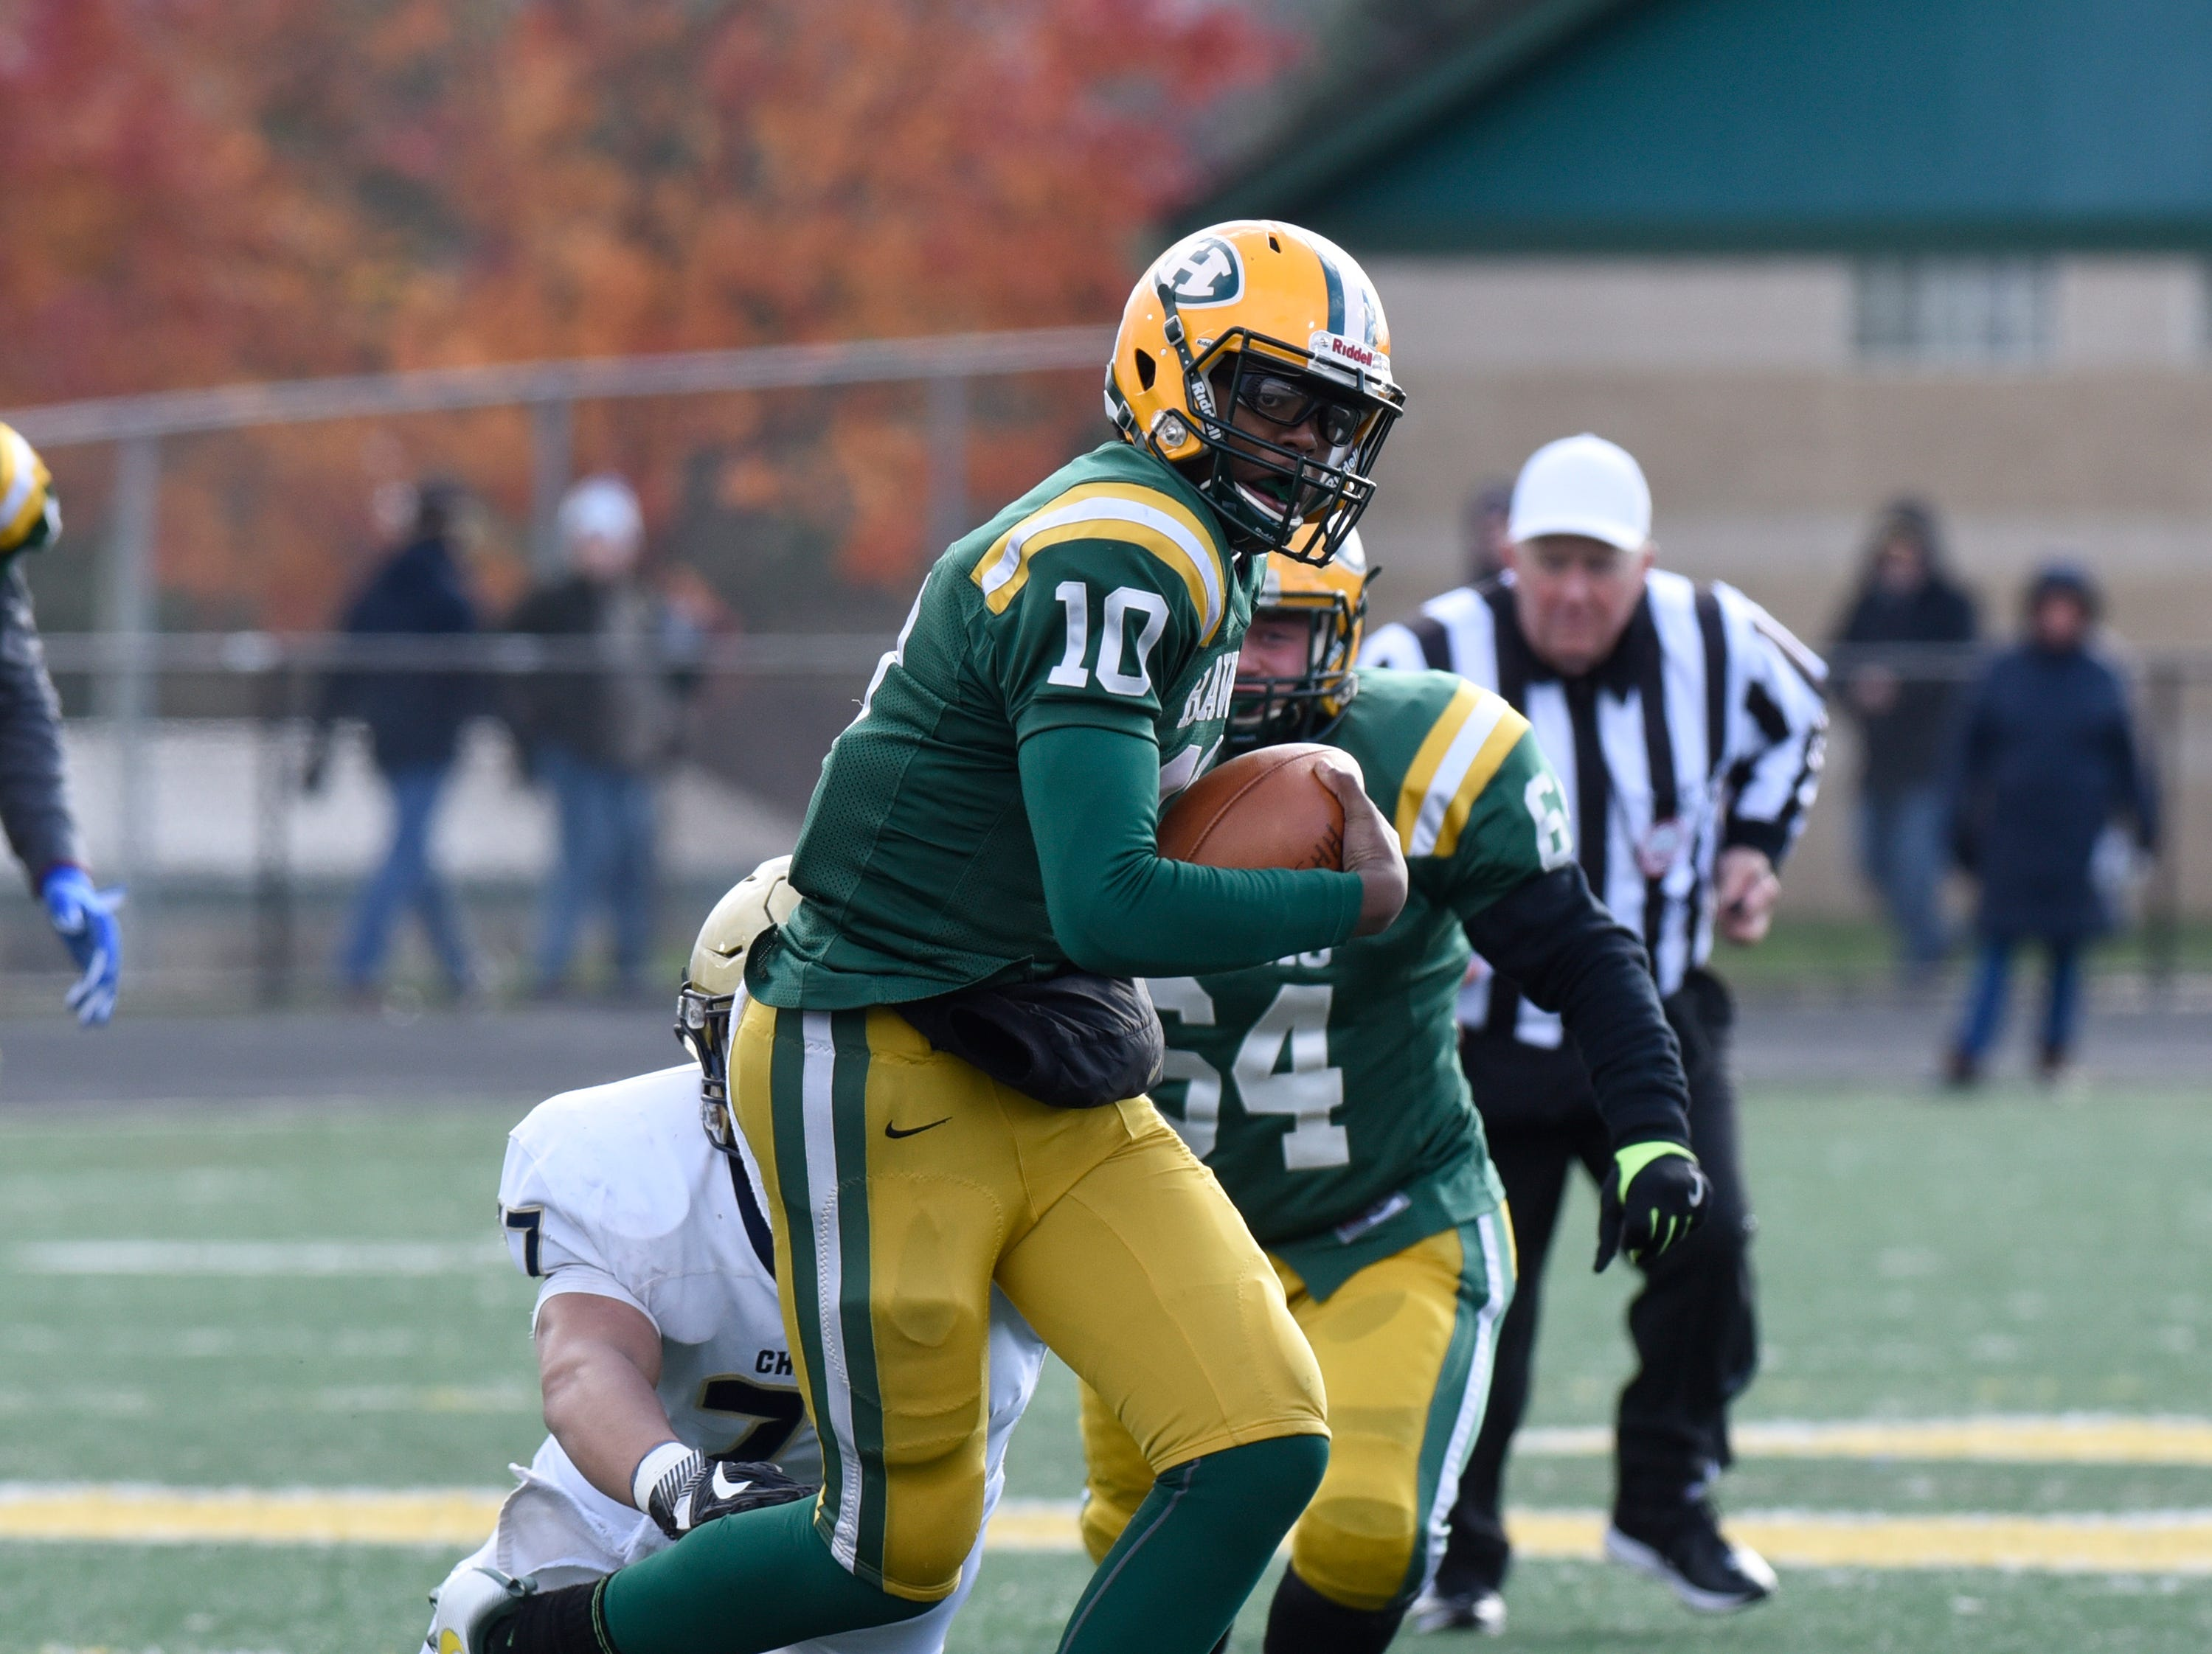 Farmington Harrison QB Keel Watson (10) during first half of the Division 4 regional final played at Buller Field Nov. 10, 2018